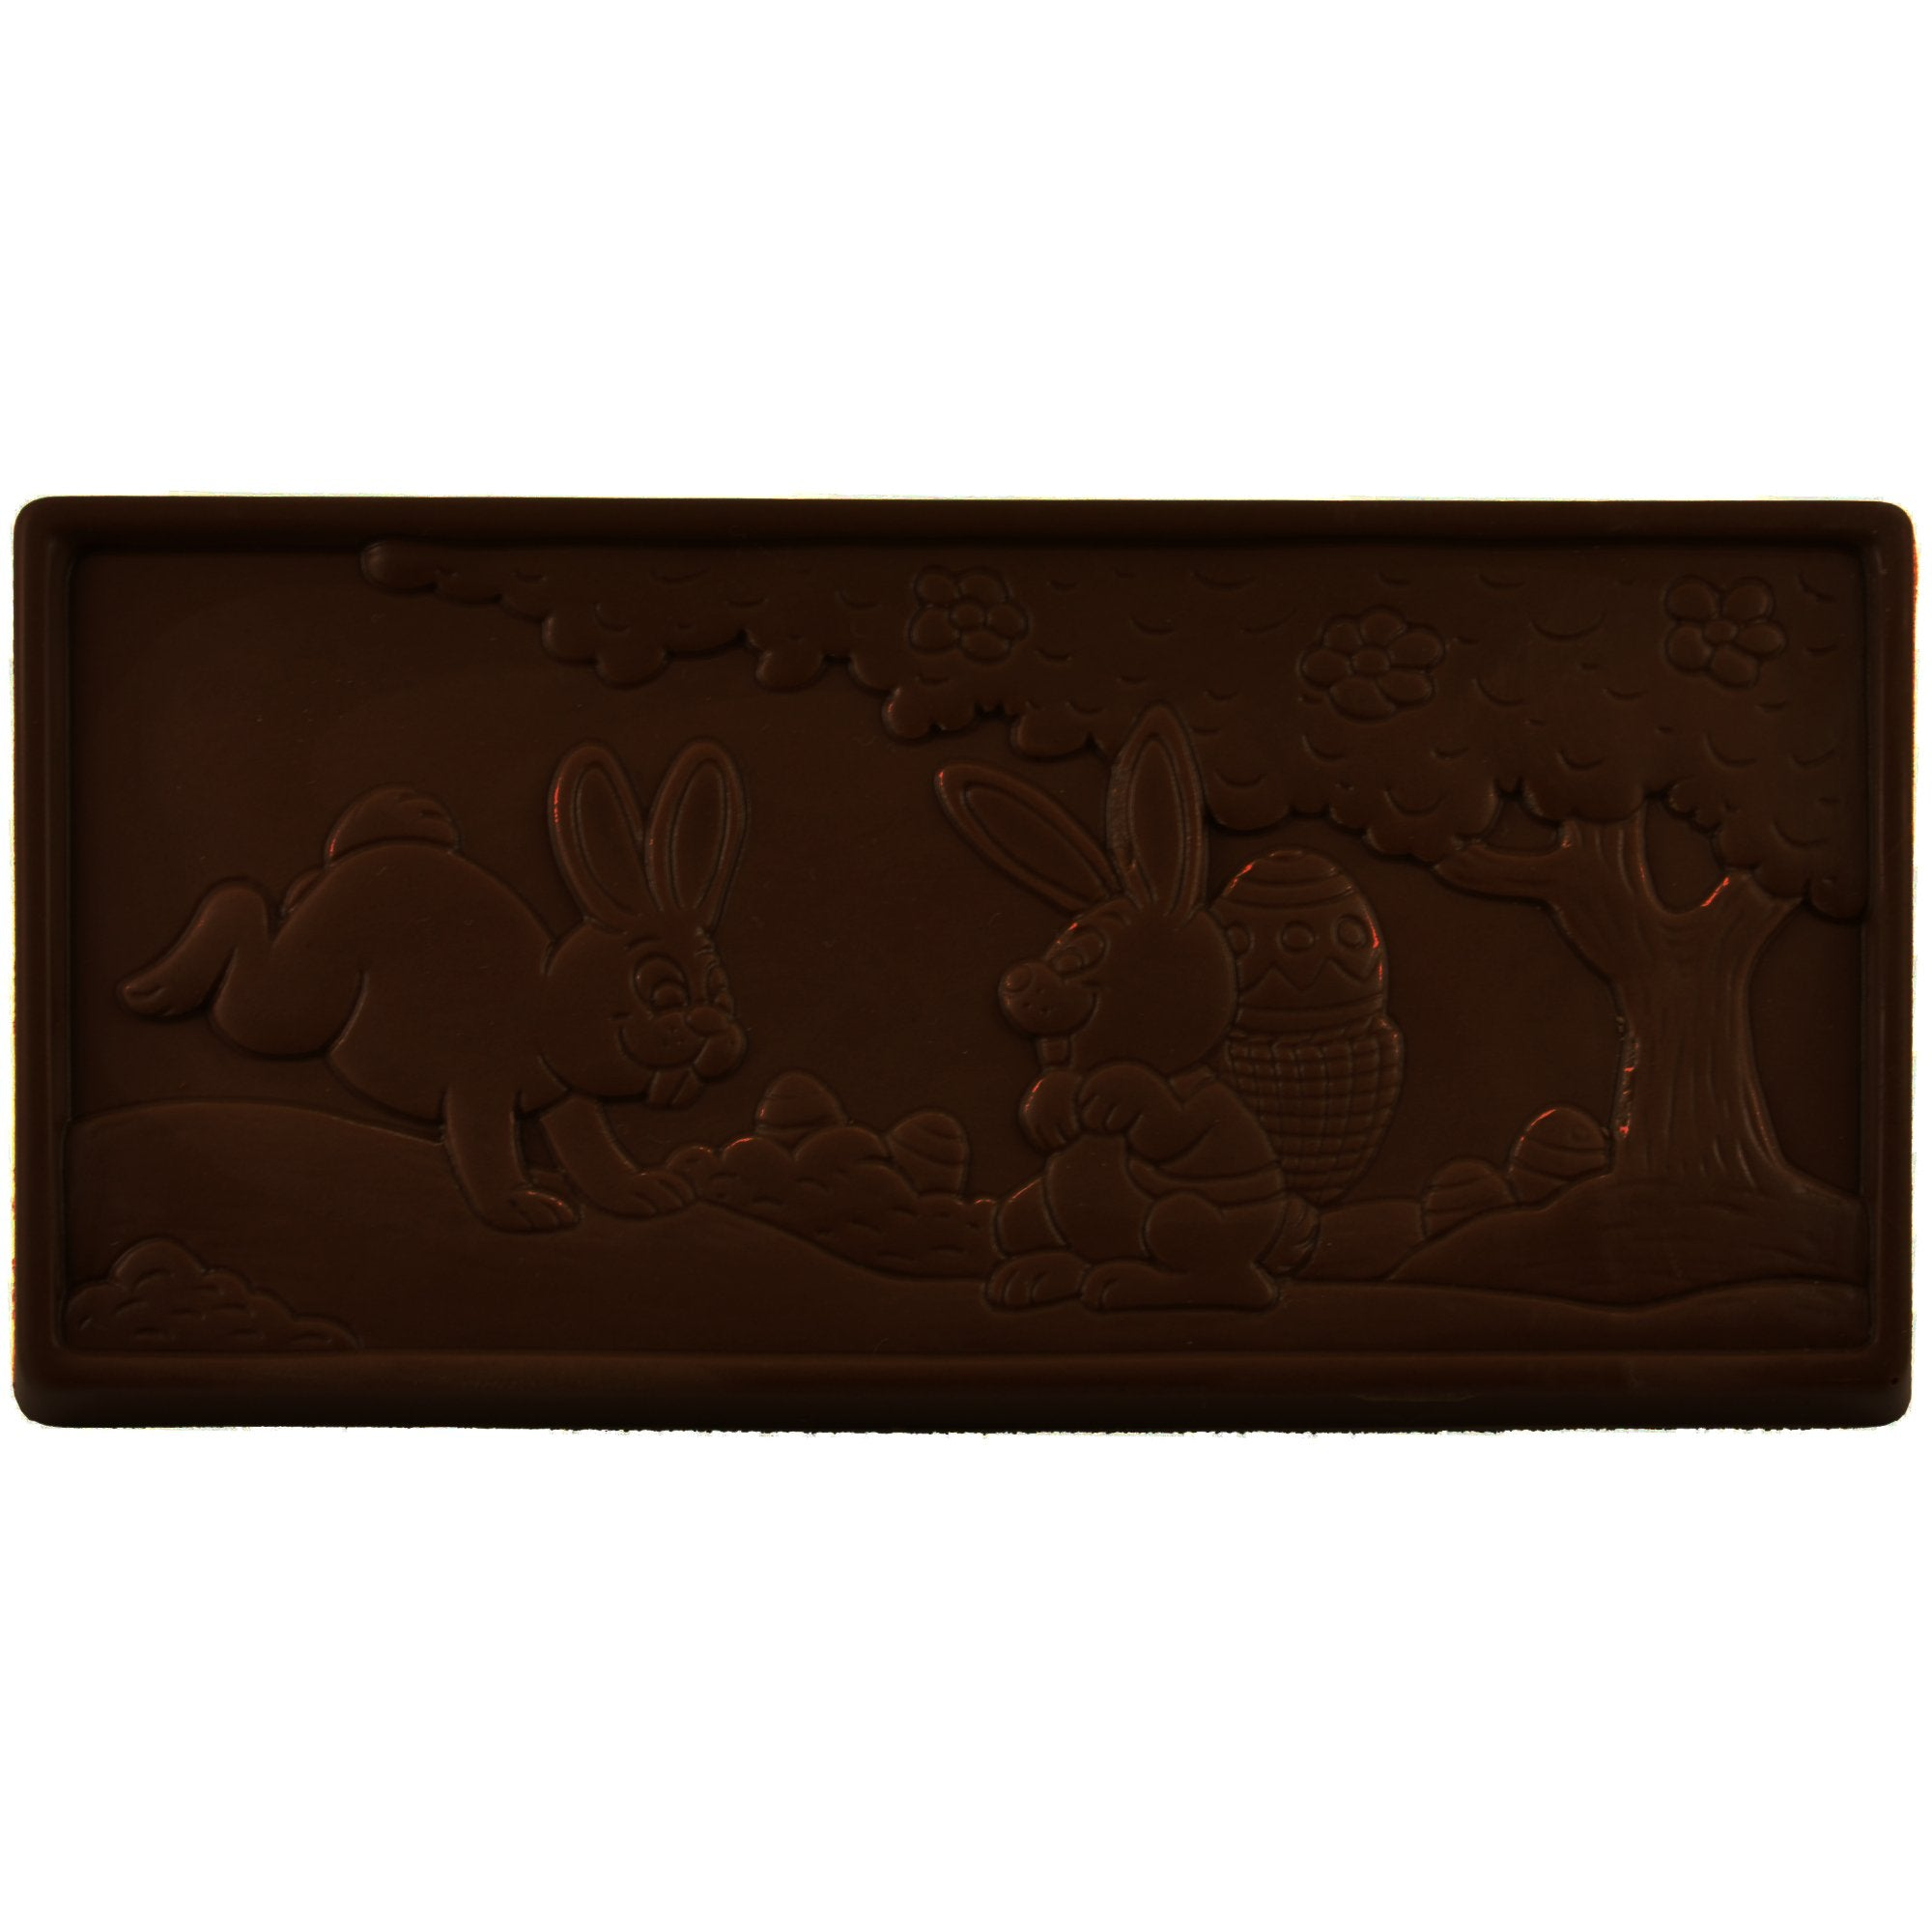 70% Dark Chocolate Easter Scene Bar